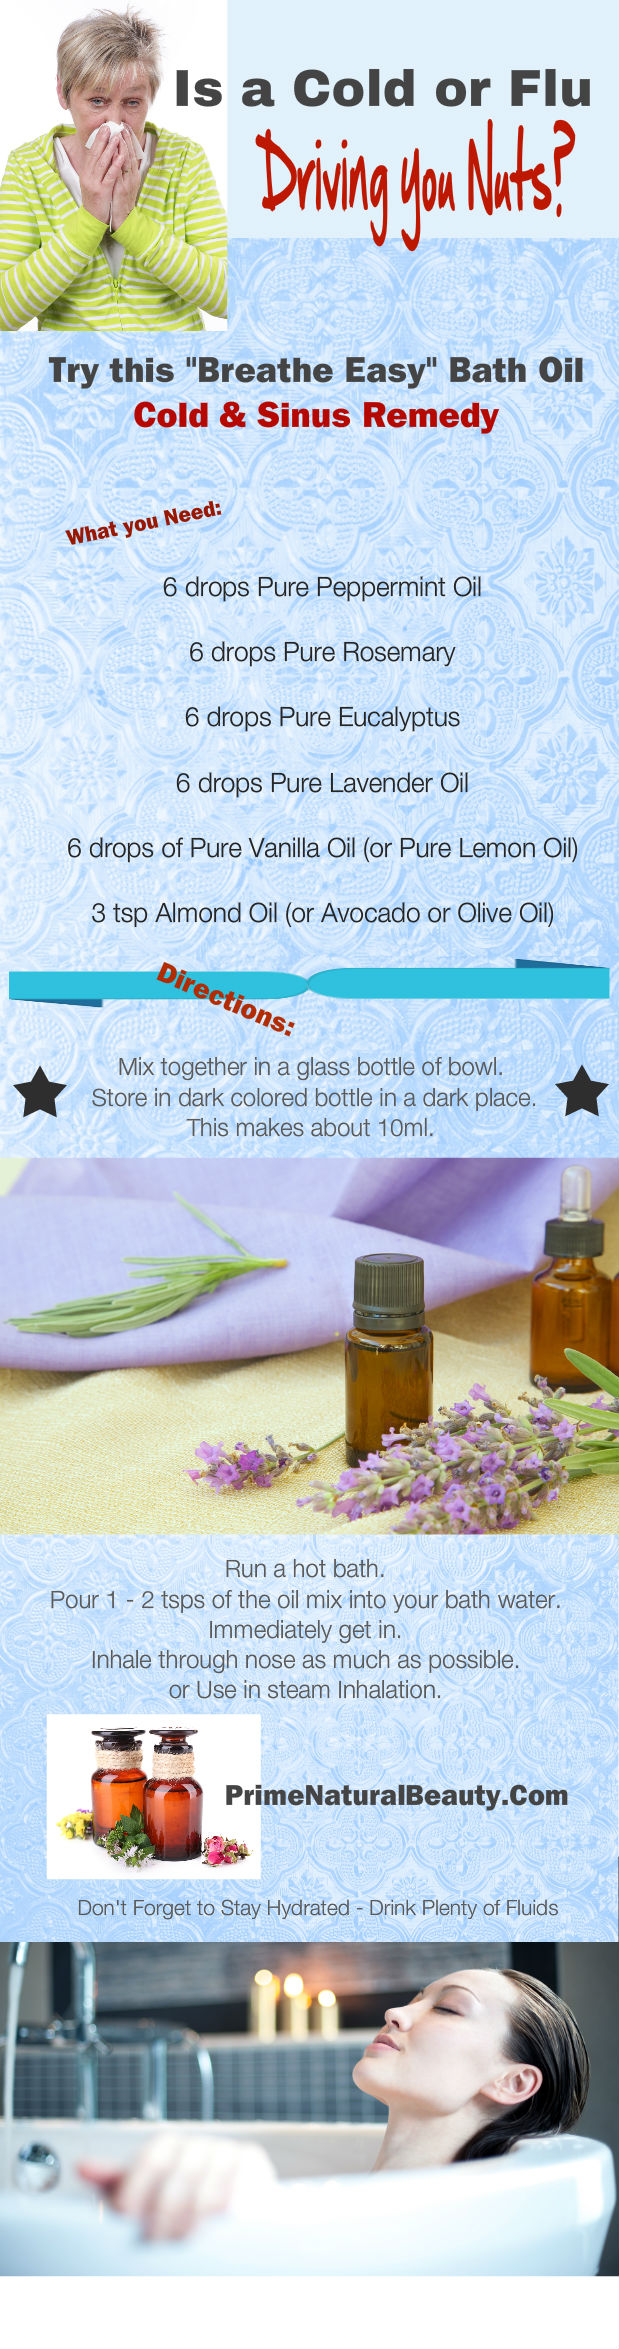 Cold and Flu Remedy Bath Oil infographic